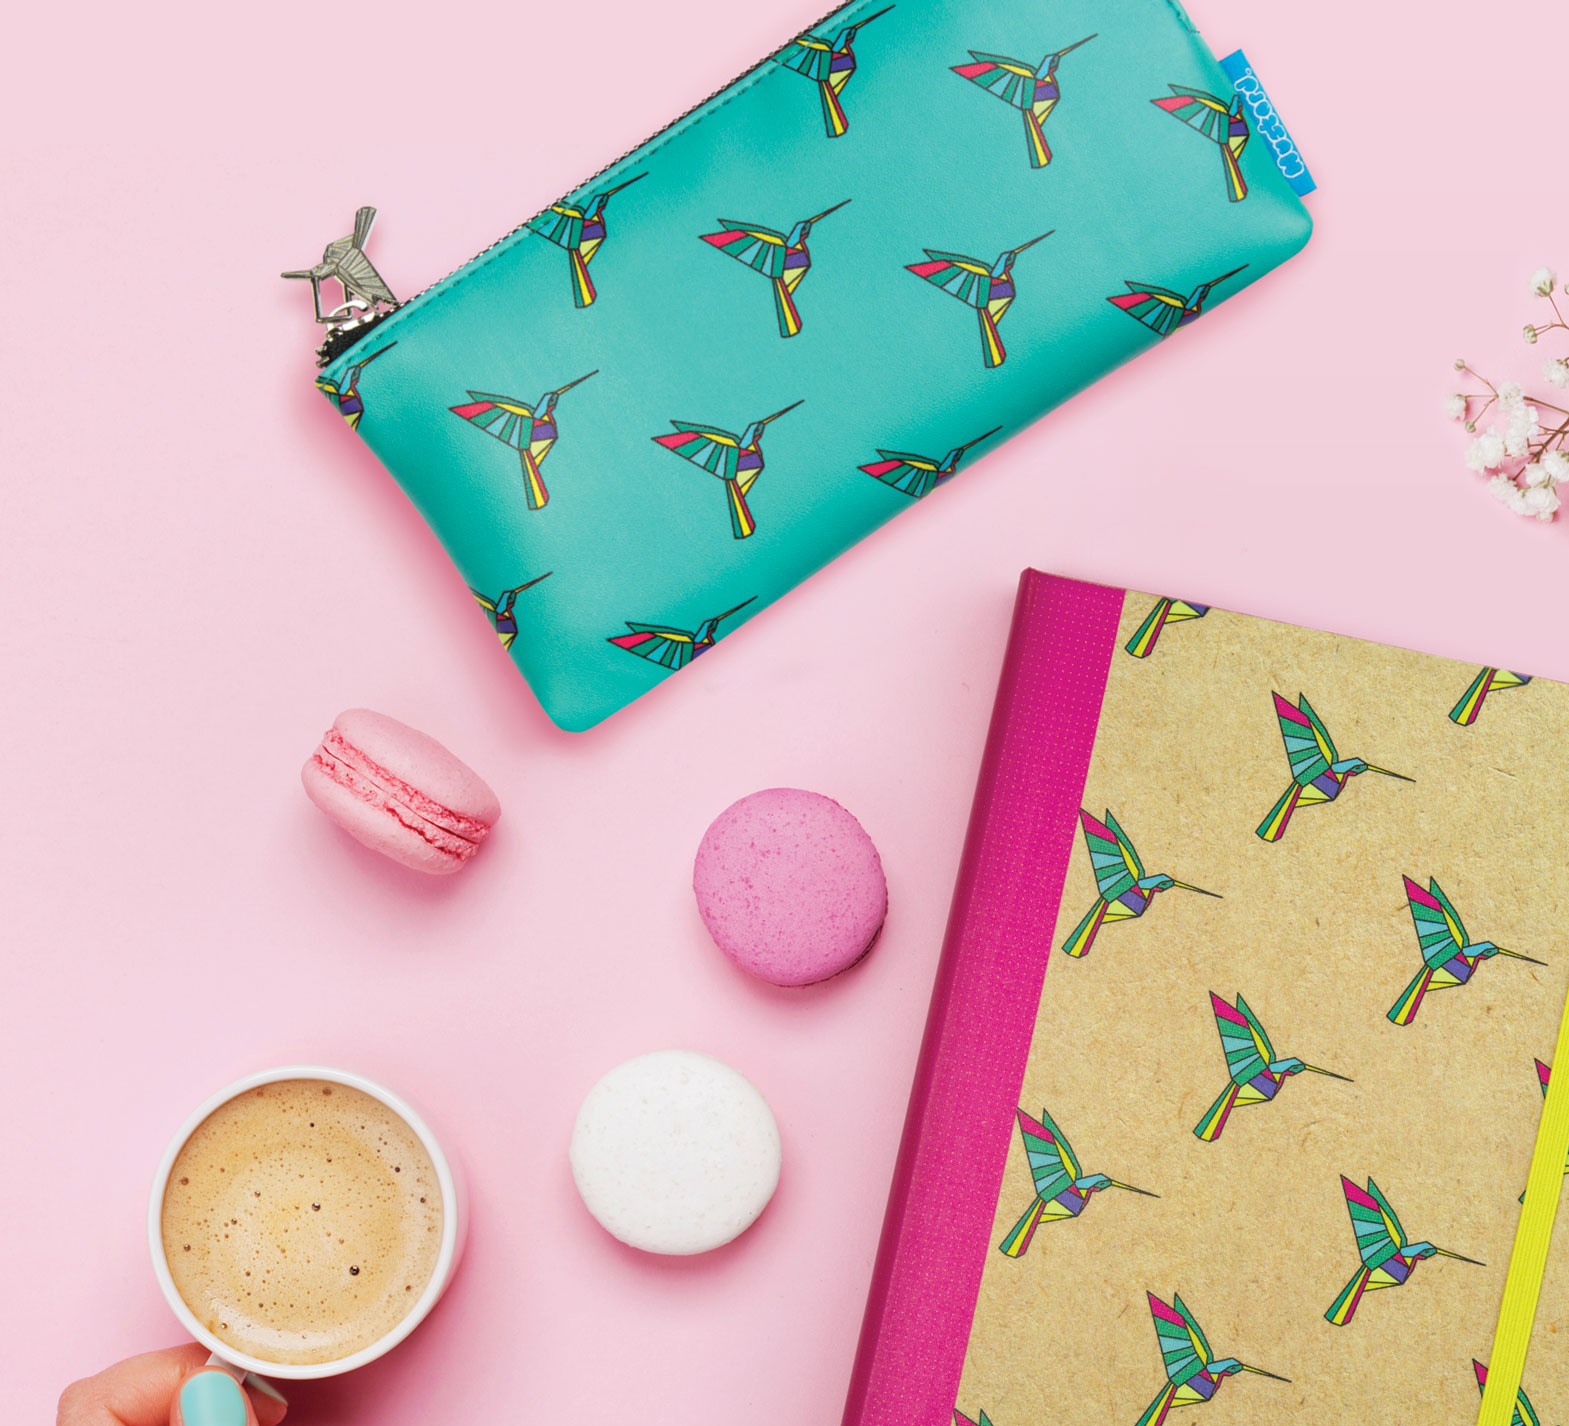 Hummingbird Pencil Case from www.justmustard.com